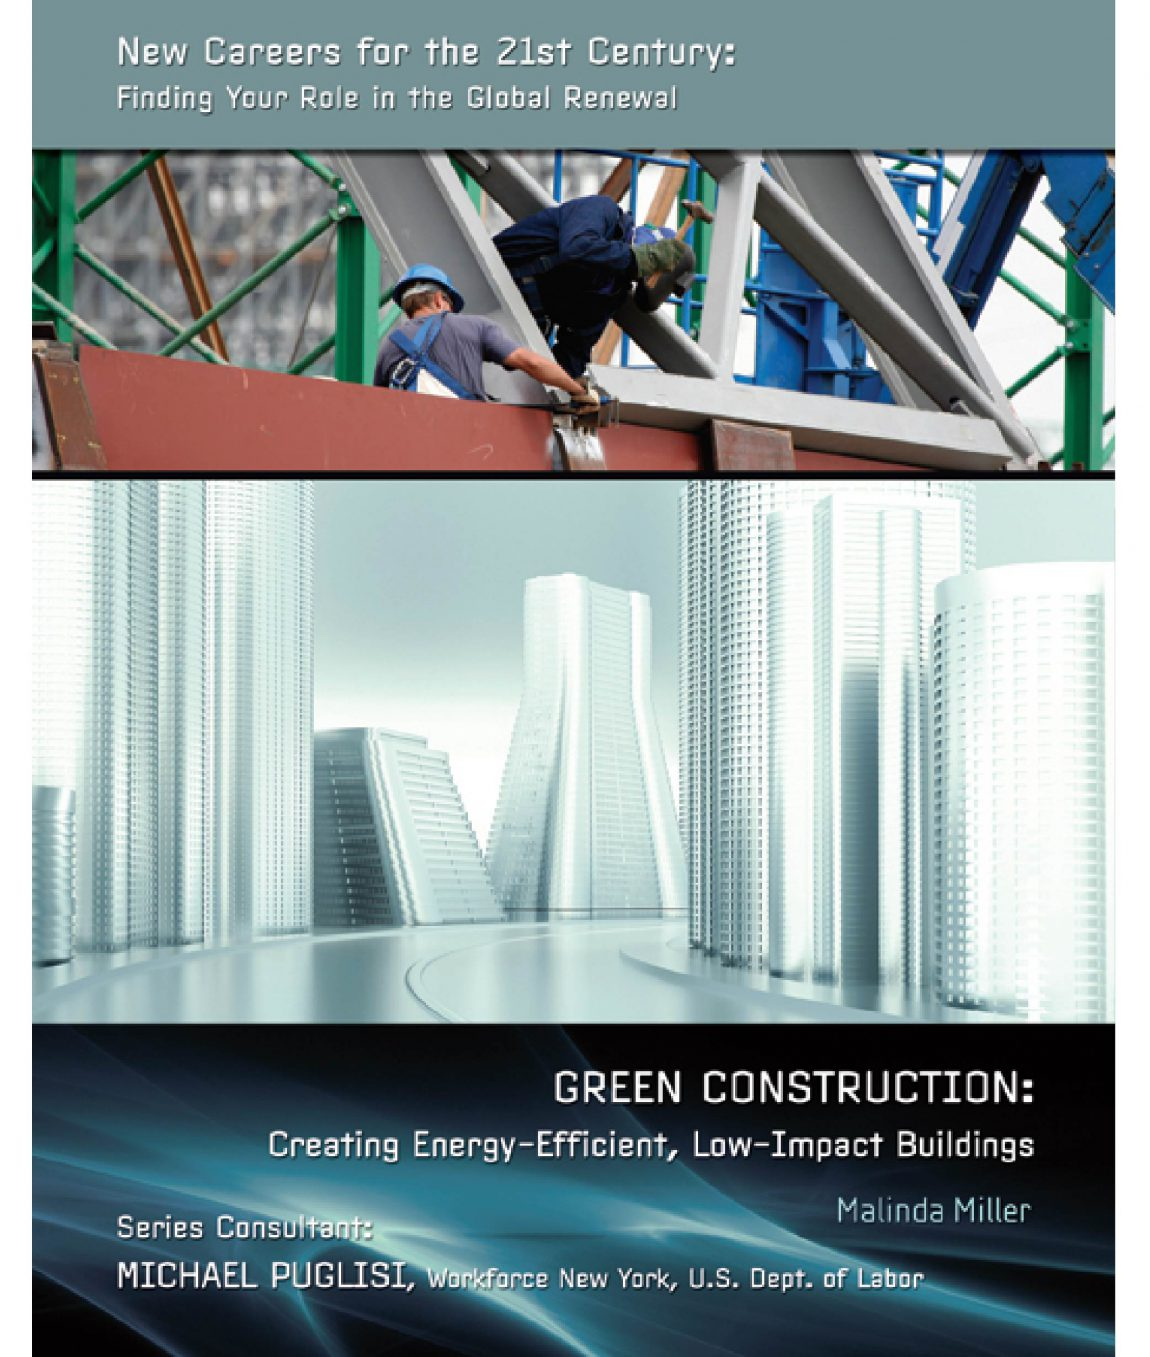 green-construction-01.jpg